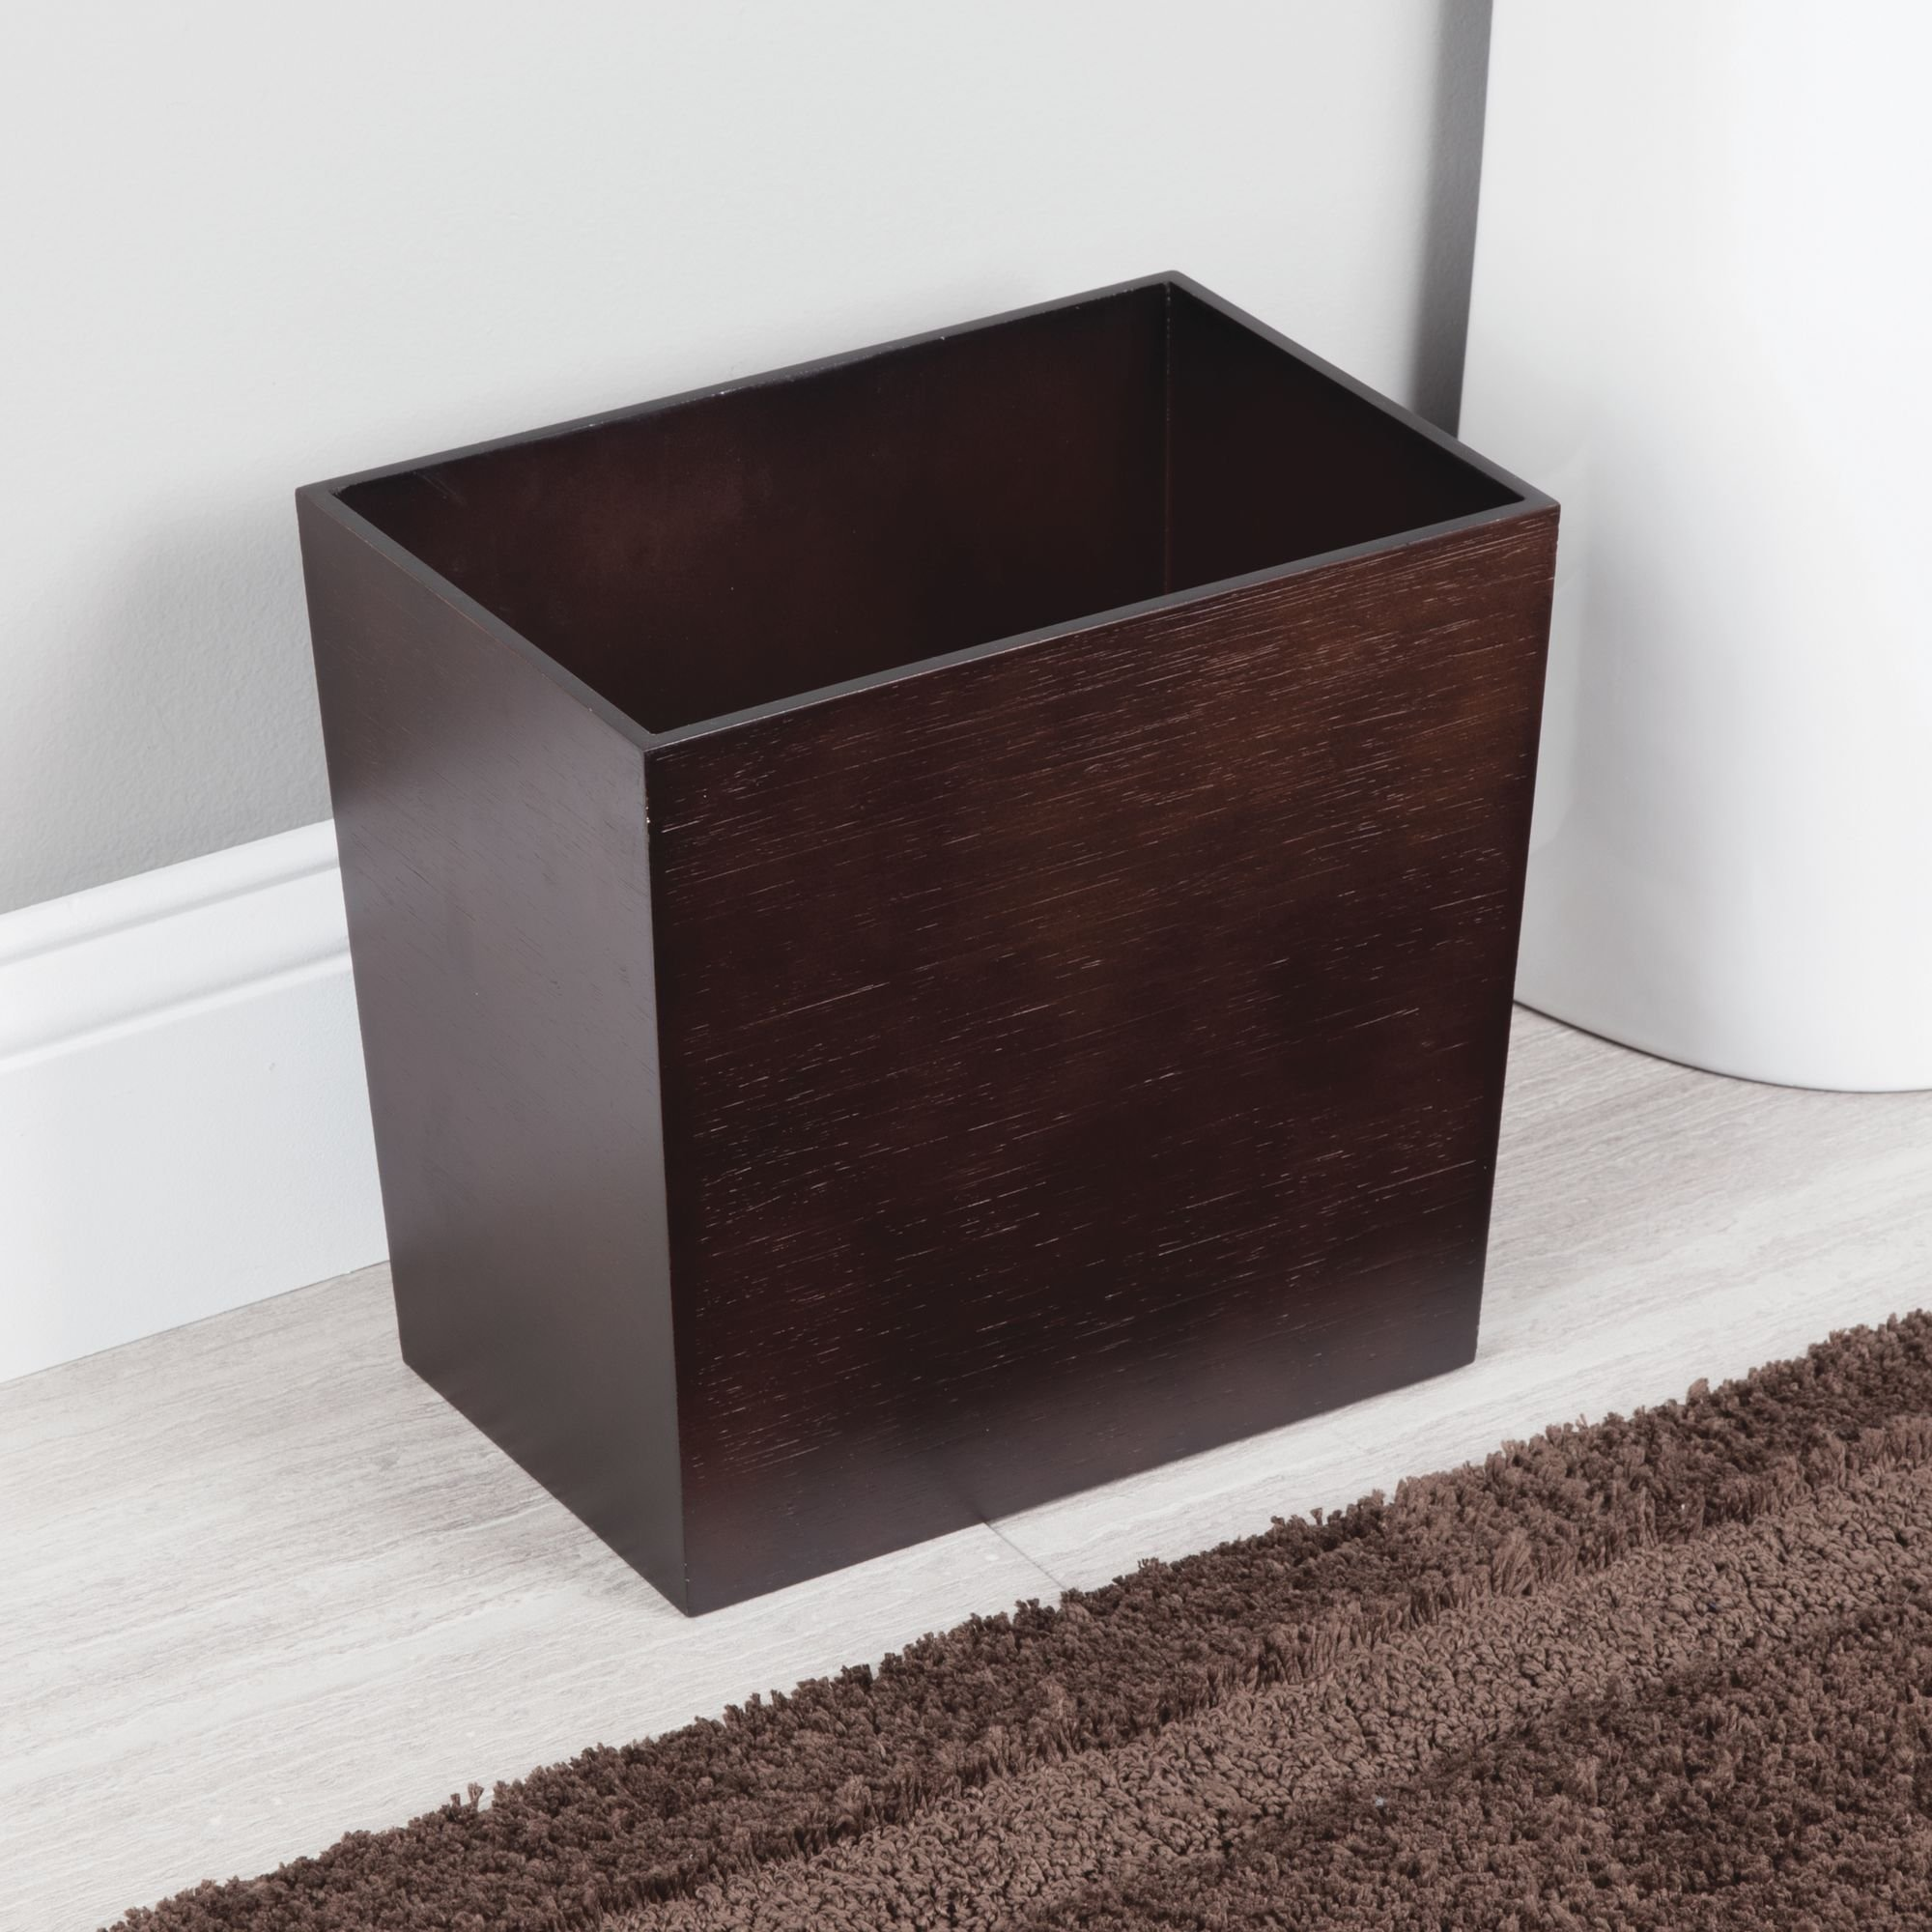 mDesign Rectangular Narrow Wood Trash Can Wastebasket, Small Garbage Container Bin for Bathrooms, Kitchens, Home Offices, Craft Rooms - Bamboo Veneer, Espresso by mDesign (Image #2)